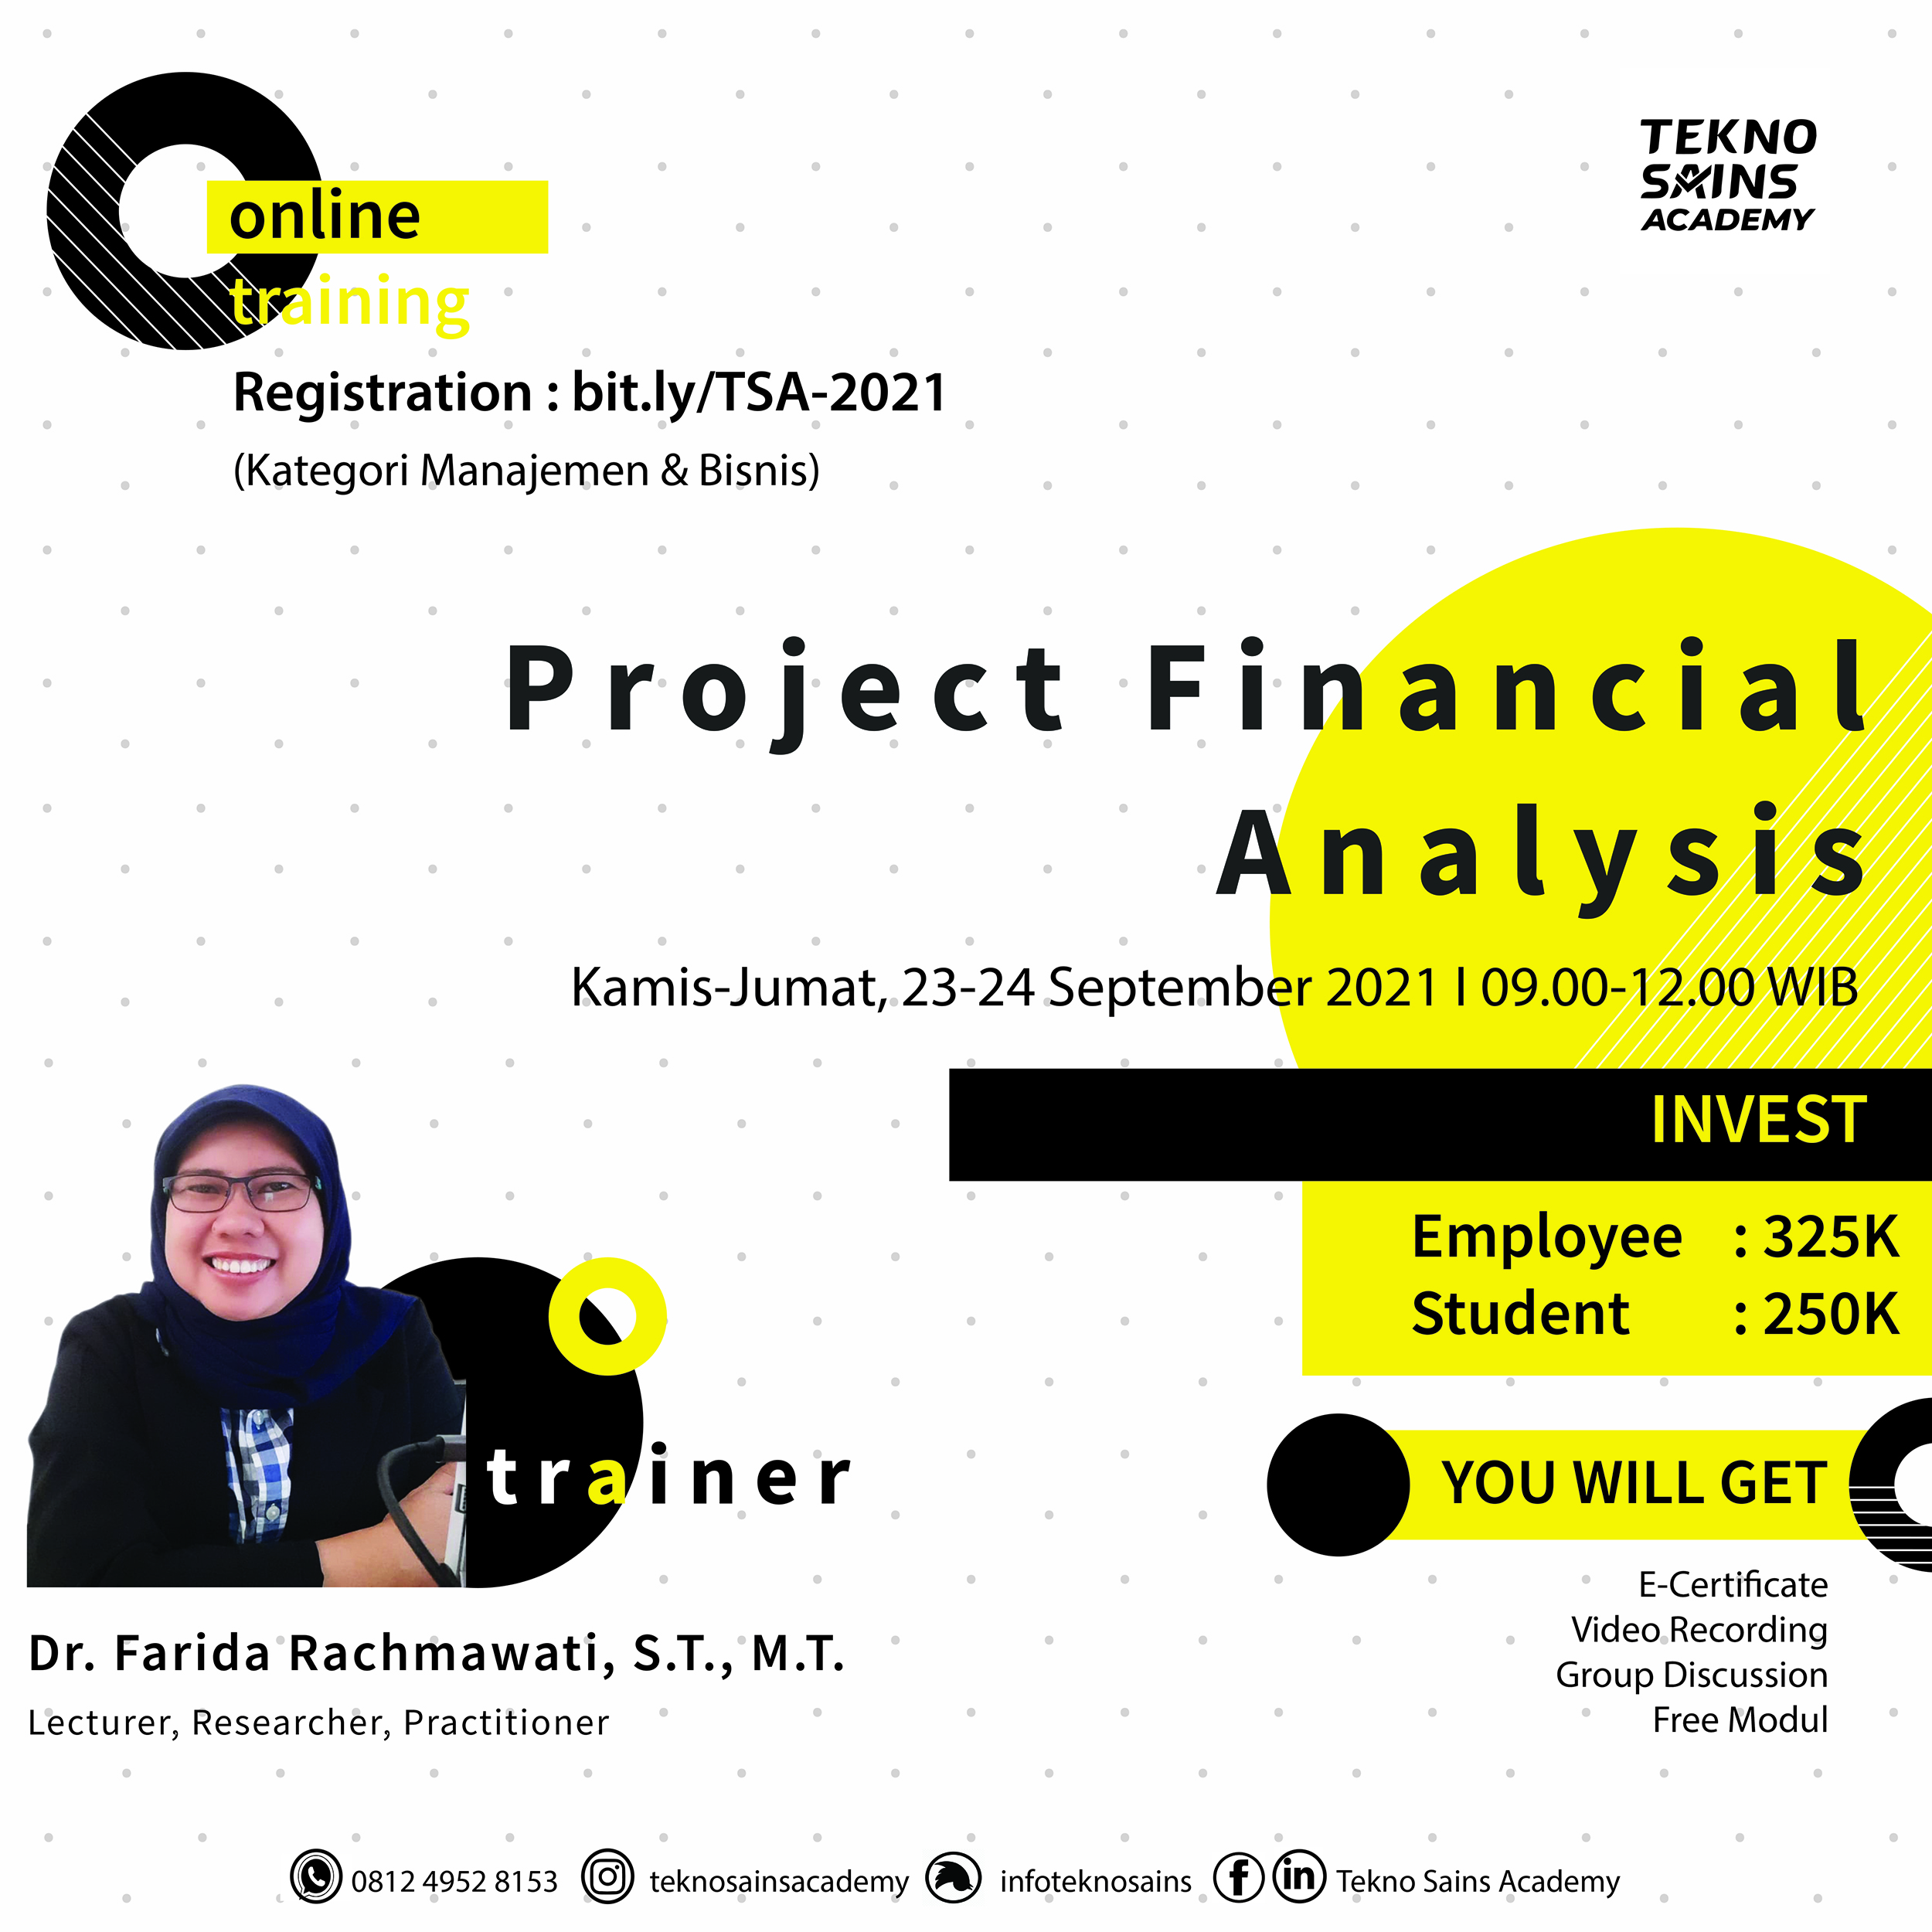 202108010-00-Project Financial Analysis 1